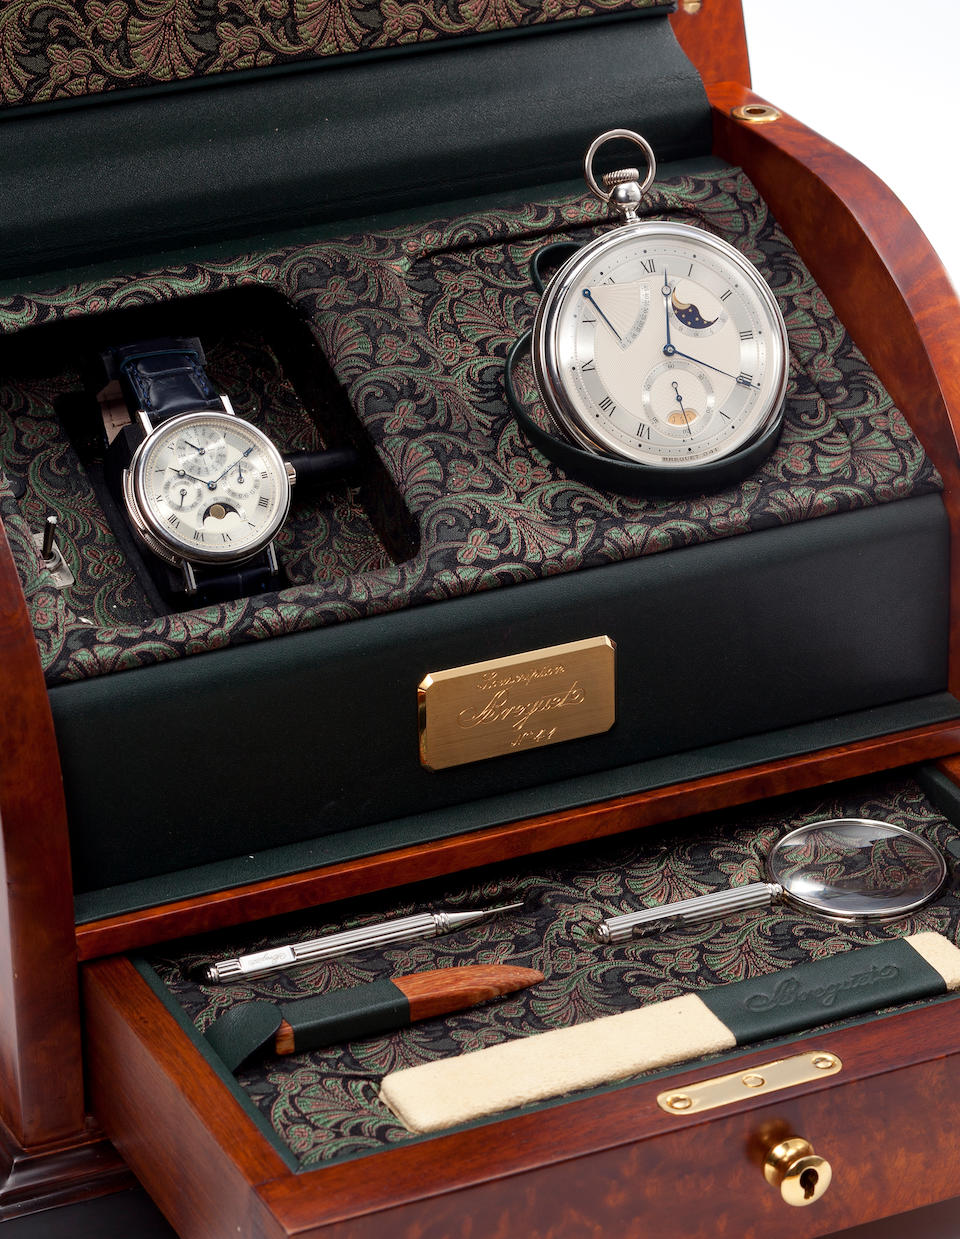 """Breguet. Souscription No. 41A set of watches comprising a very fine platinum minute repeating wristwatch with perpetual calendar and phases of the moon en suite with a very fine platinum """"Perpetuelle"""" self winding pocket watch with date, phases of the moon and power reserve indication"""